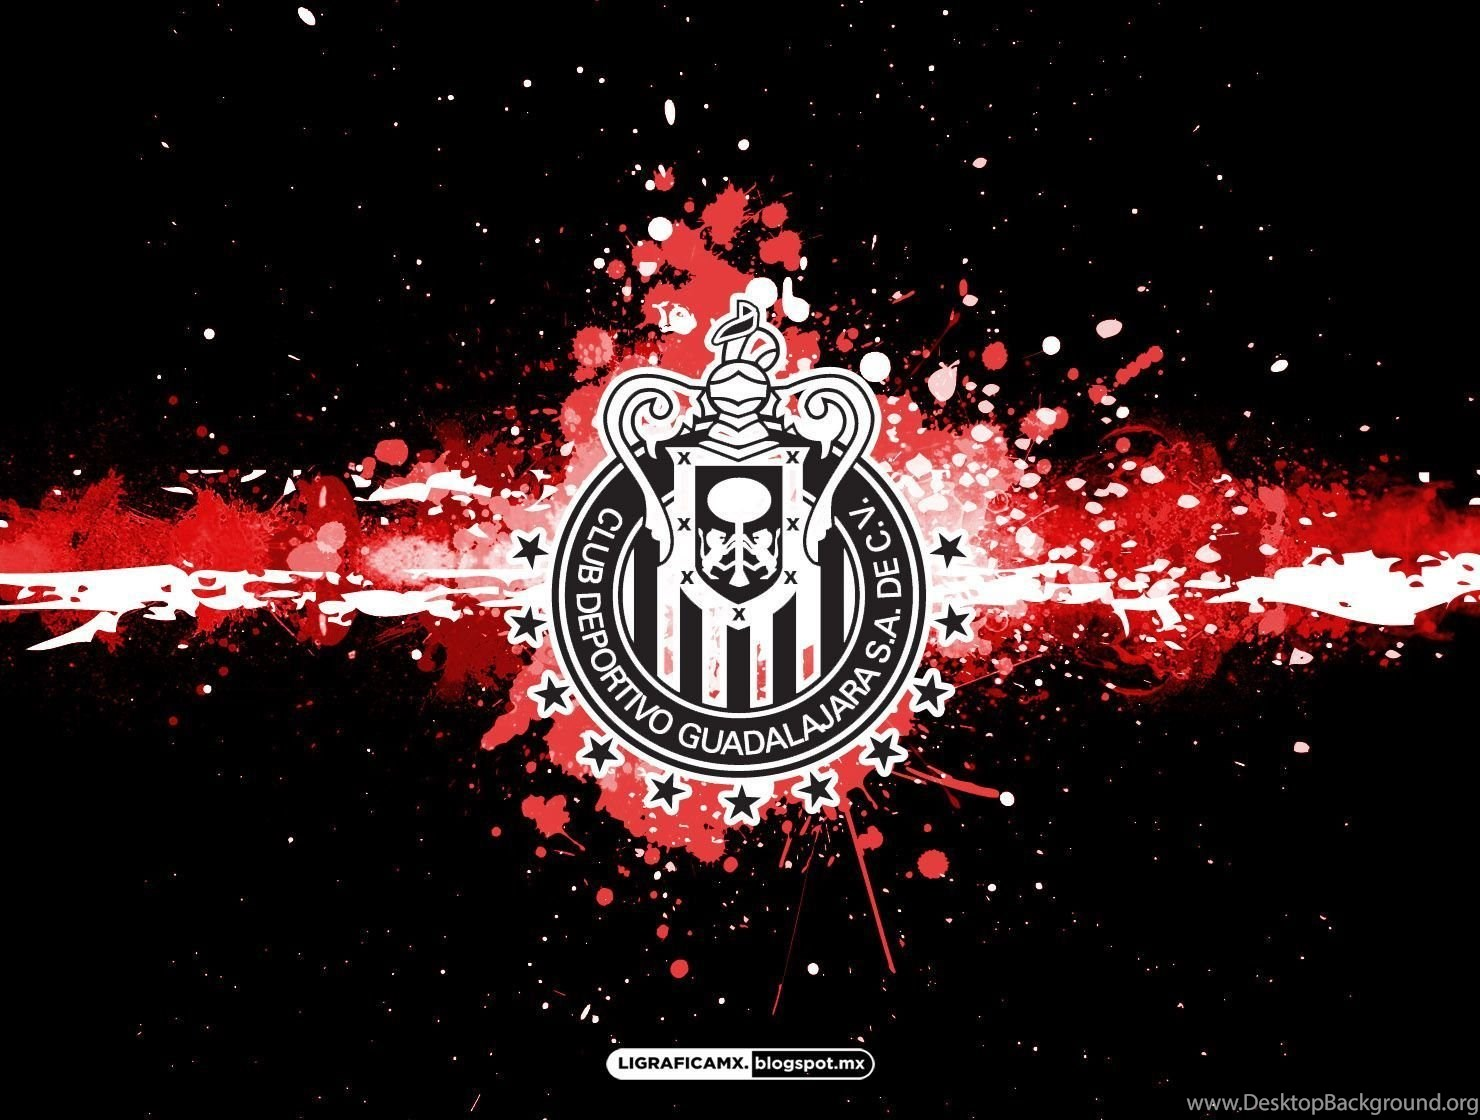 Hd guadalajara fc logo hd wallpapers database desktop background 1480x1120 voltagebd Image collections